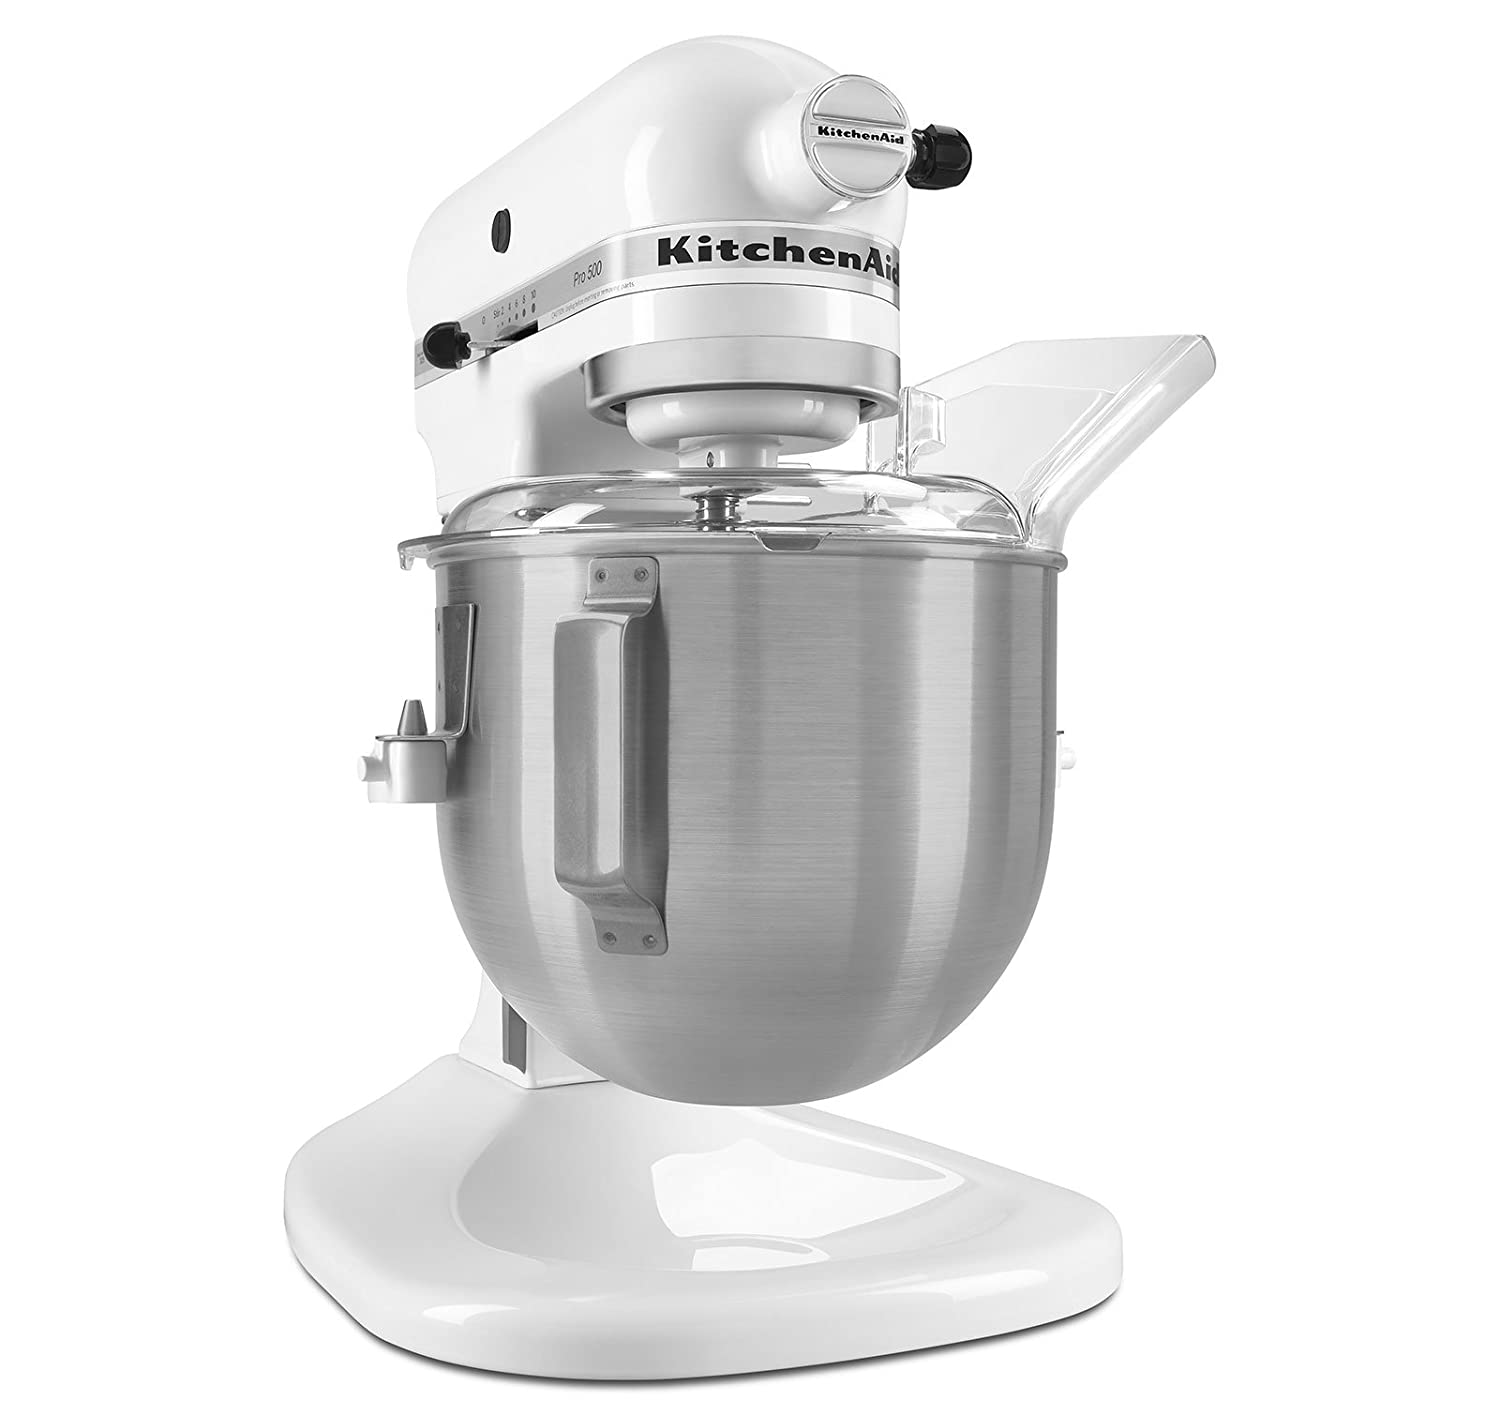 Kitchen aid heavy duty - Amazon Com Kitchenaid Ksm500pswh Pro 500 Series 10 Speed 5 Quart Stand Mixer White Electric Stand Mixers Kitchen Dining